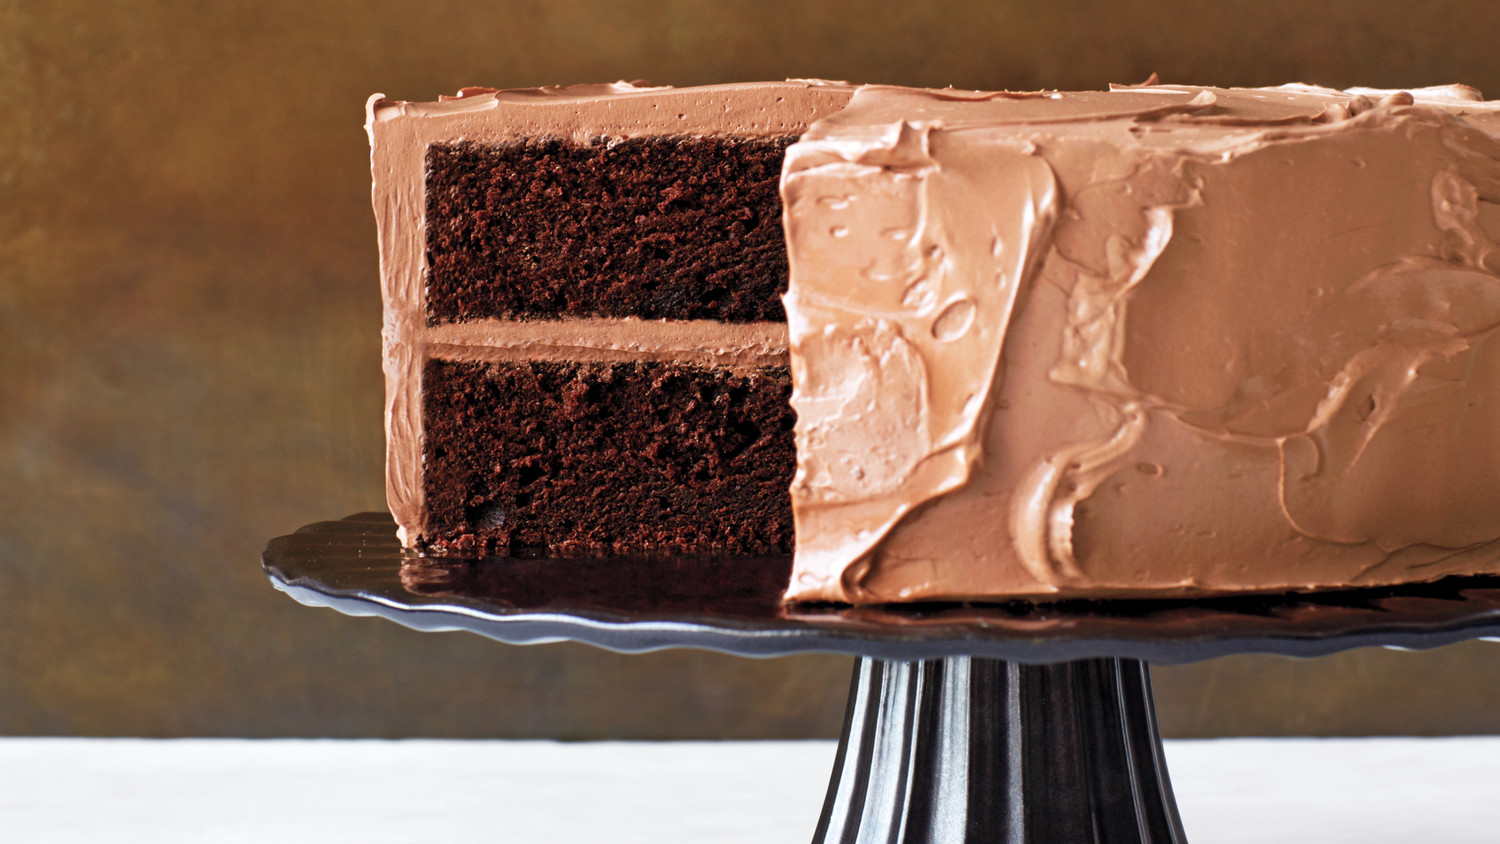 Devil S Food Cake With Chocolate Fudge Frosting Recipe: The Ultimate Devil's Food Cake Recipe